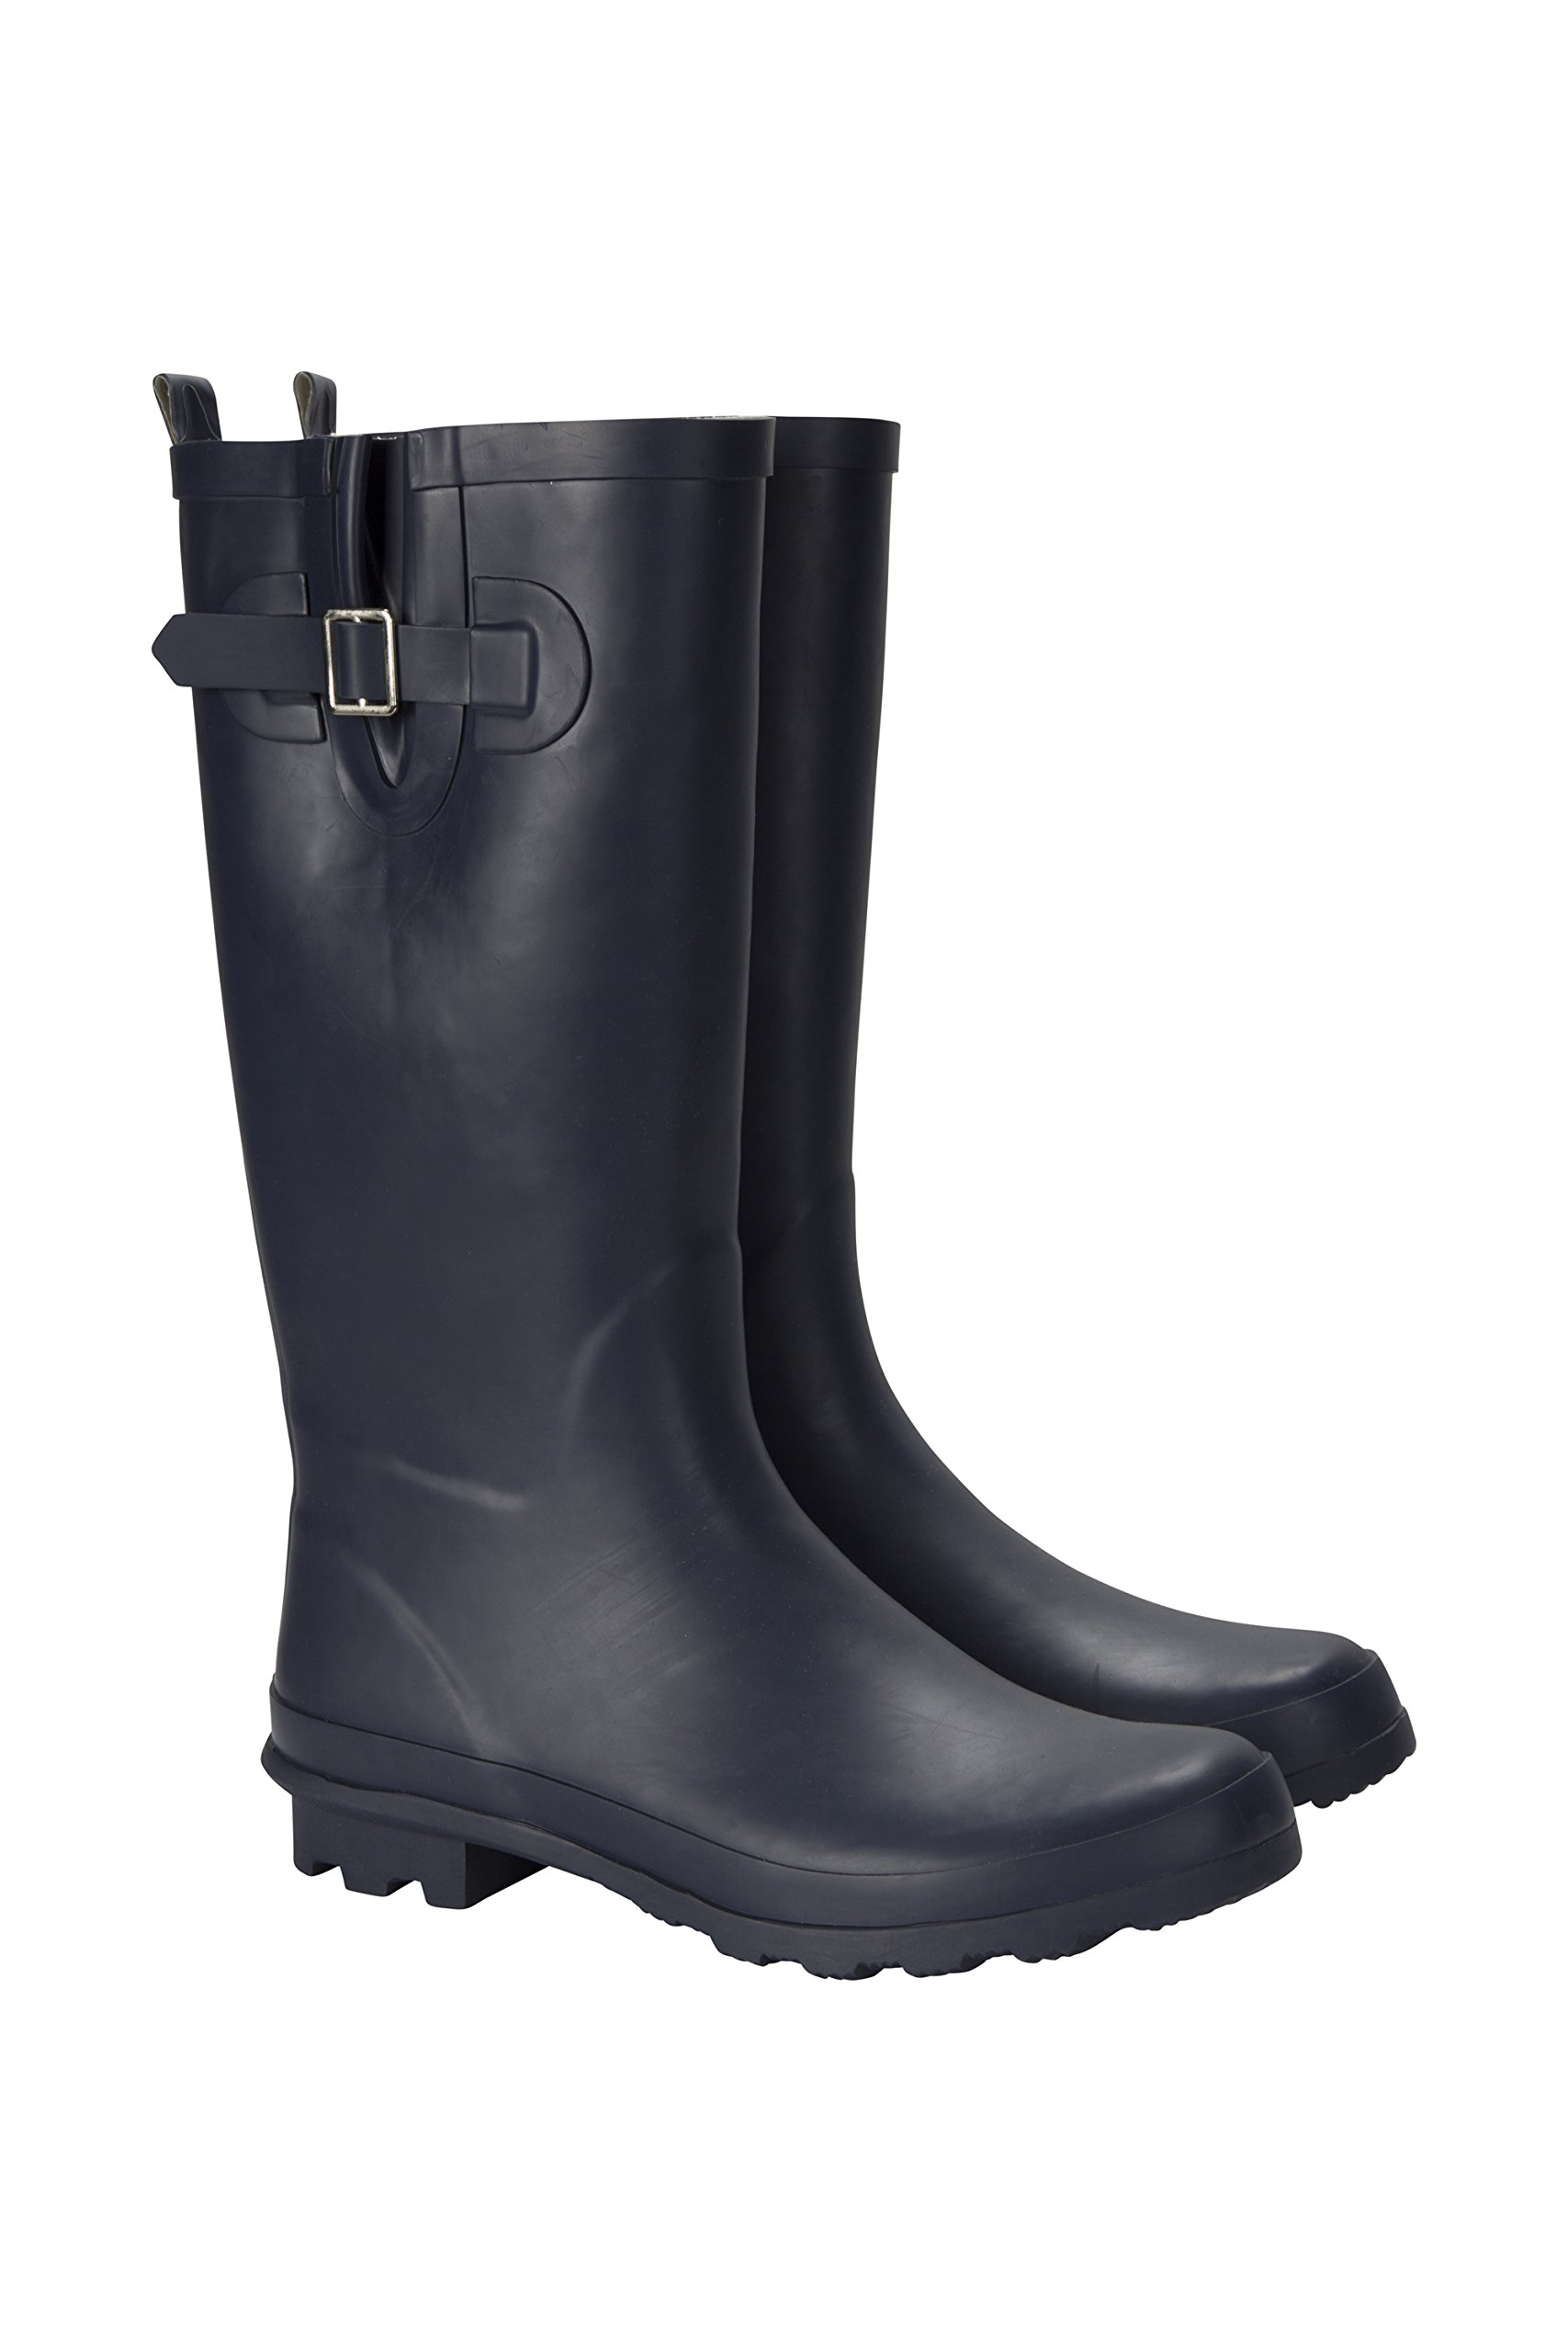 Mountain Warehouse Puddle Perfection Womens Wellies -Rain Shoes Navy 6 M US Women